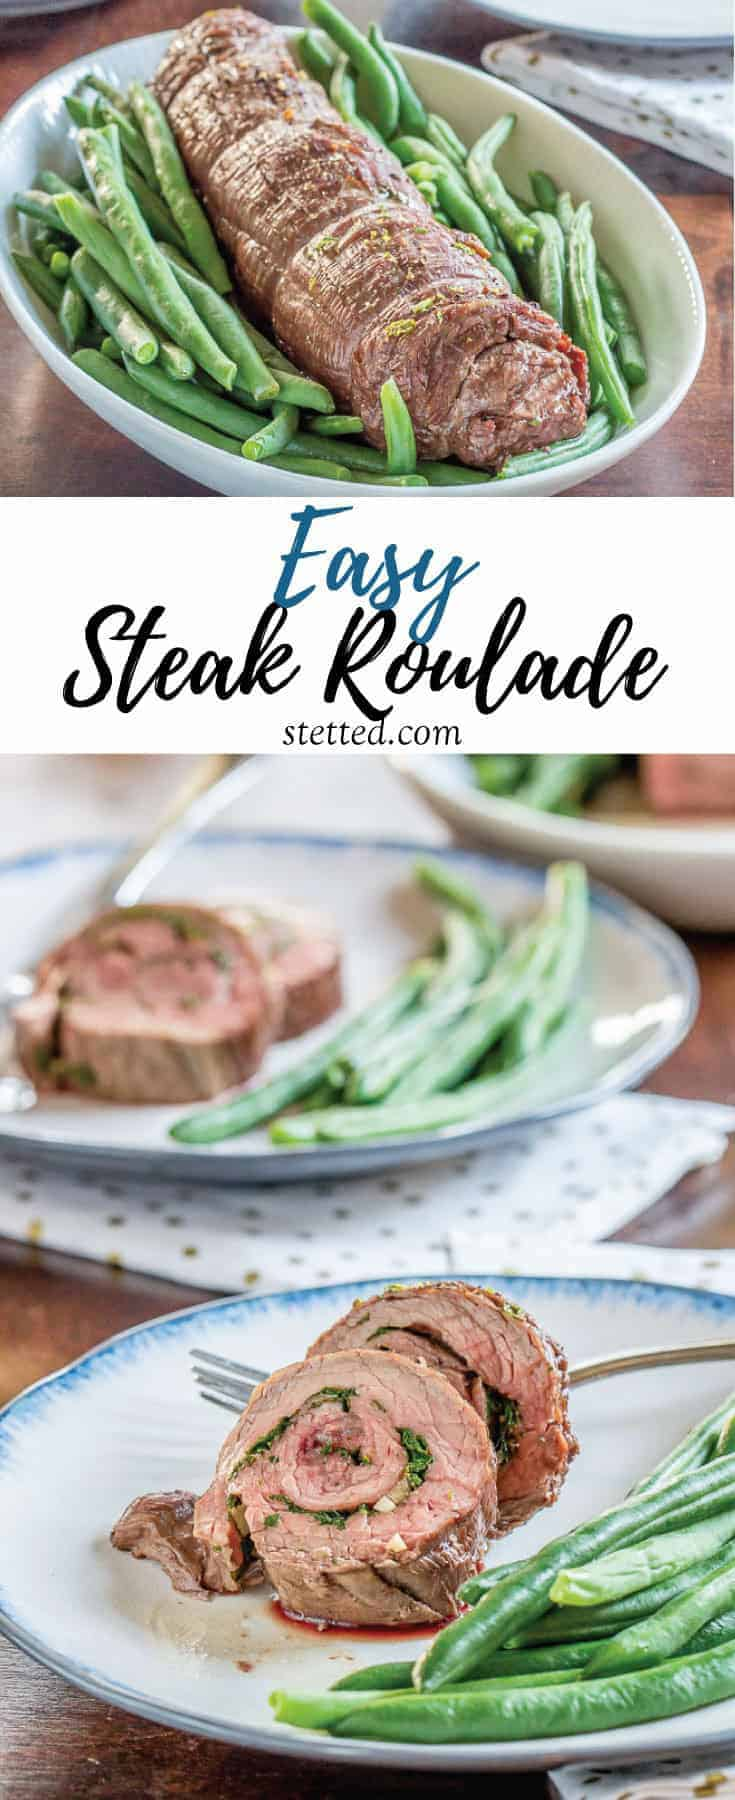 This easy steak roulade recipe looks impressive, but it's simple enough to put together on weeknights. An orange gremolata is stuffed inside for a fresh take.